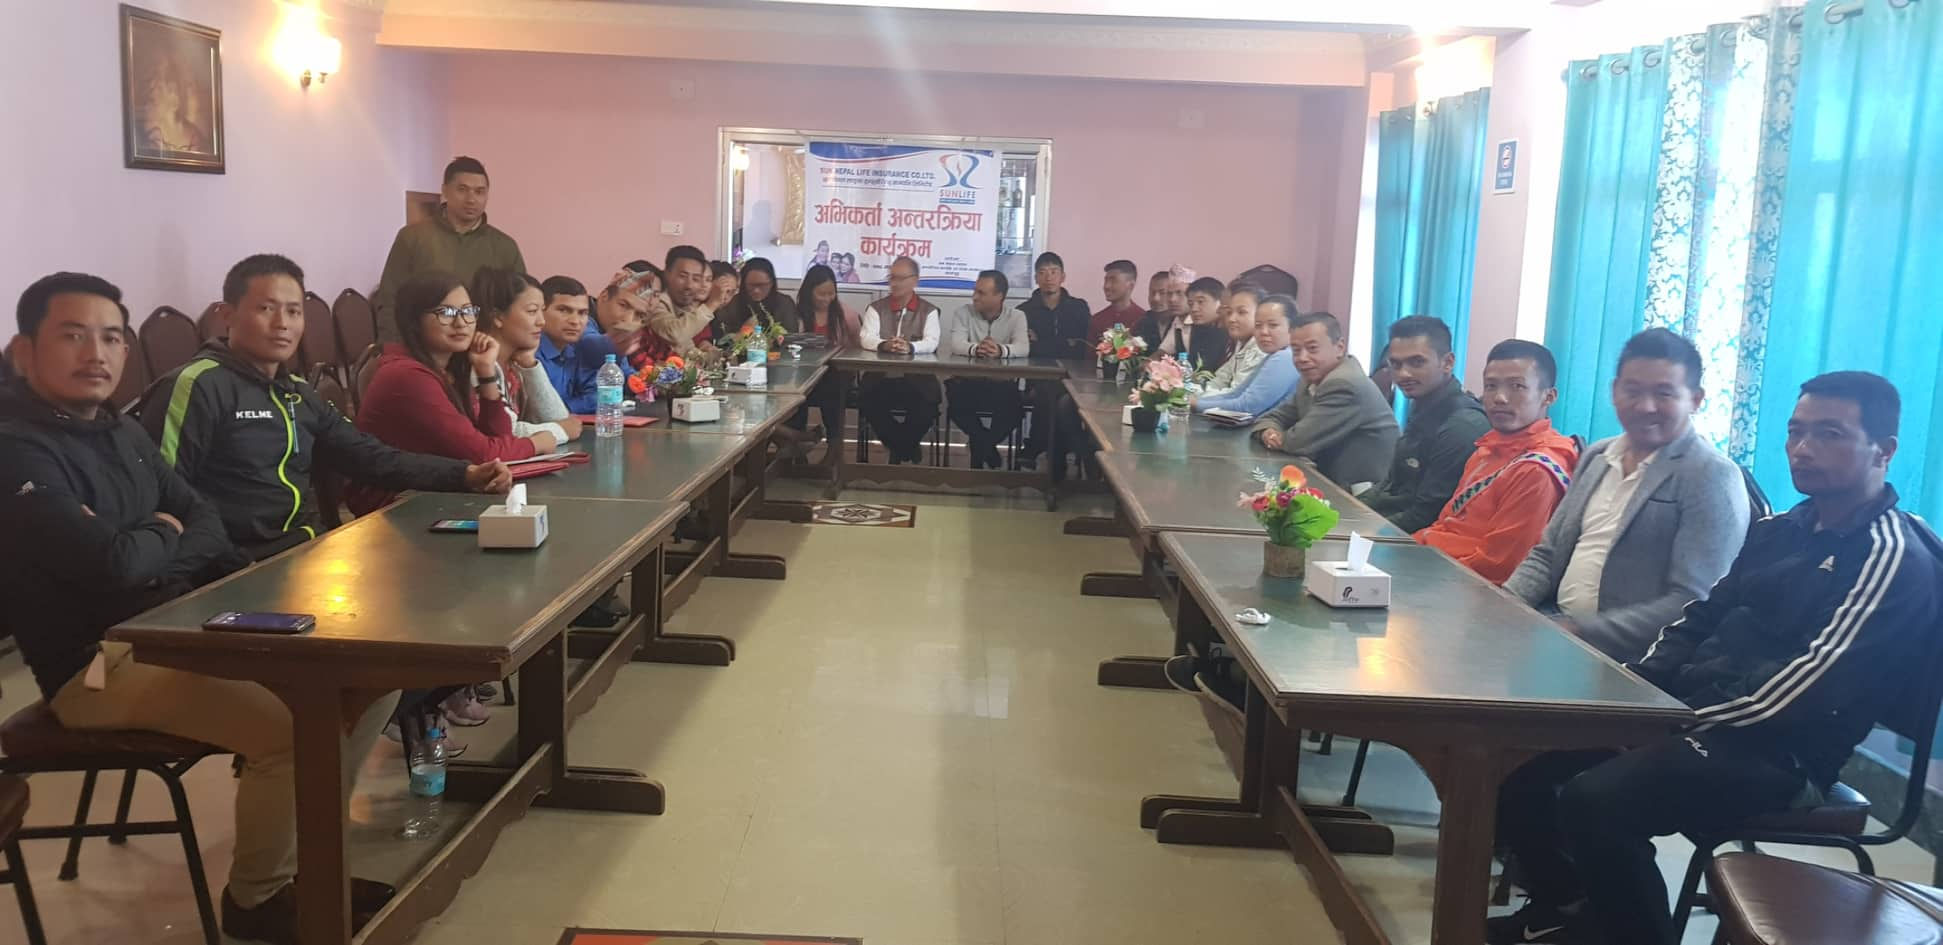 Insurance Awareness Programme at Taplejung